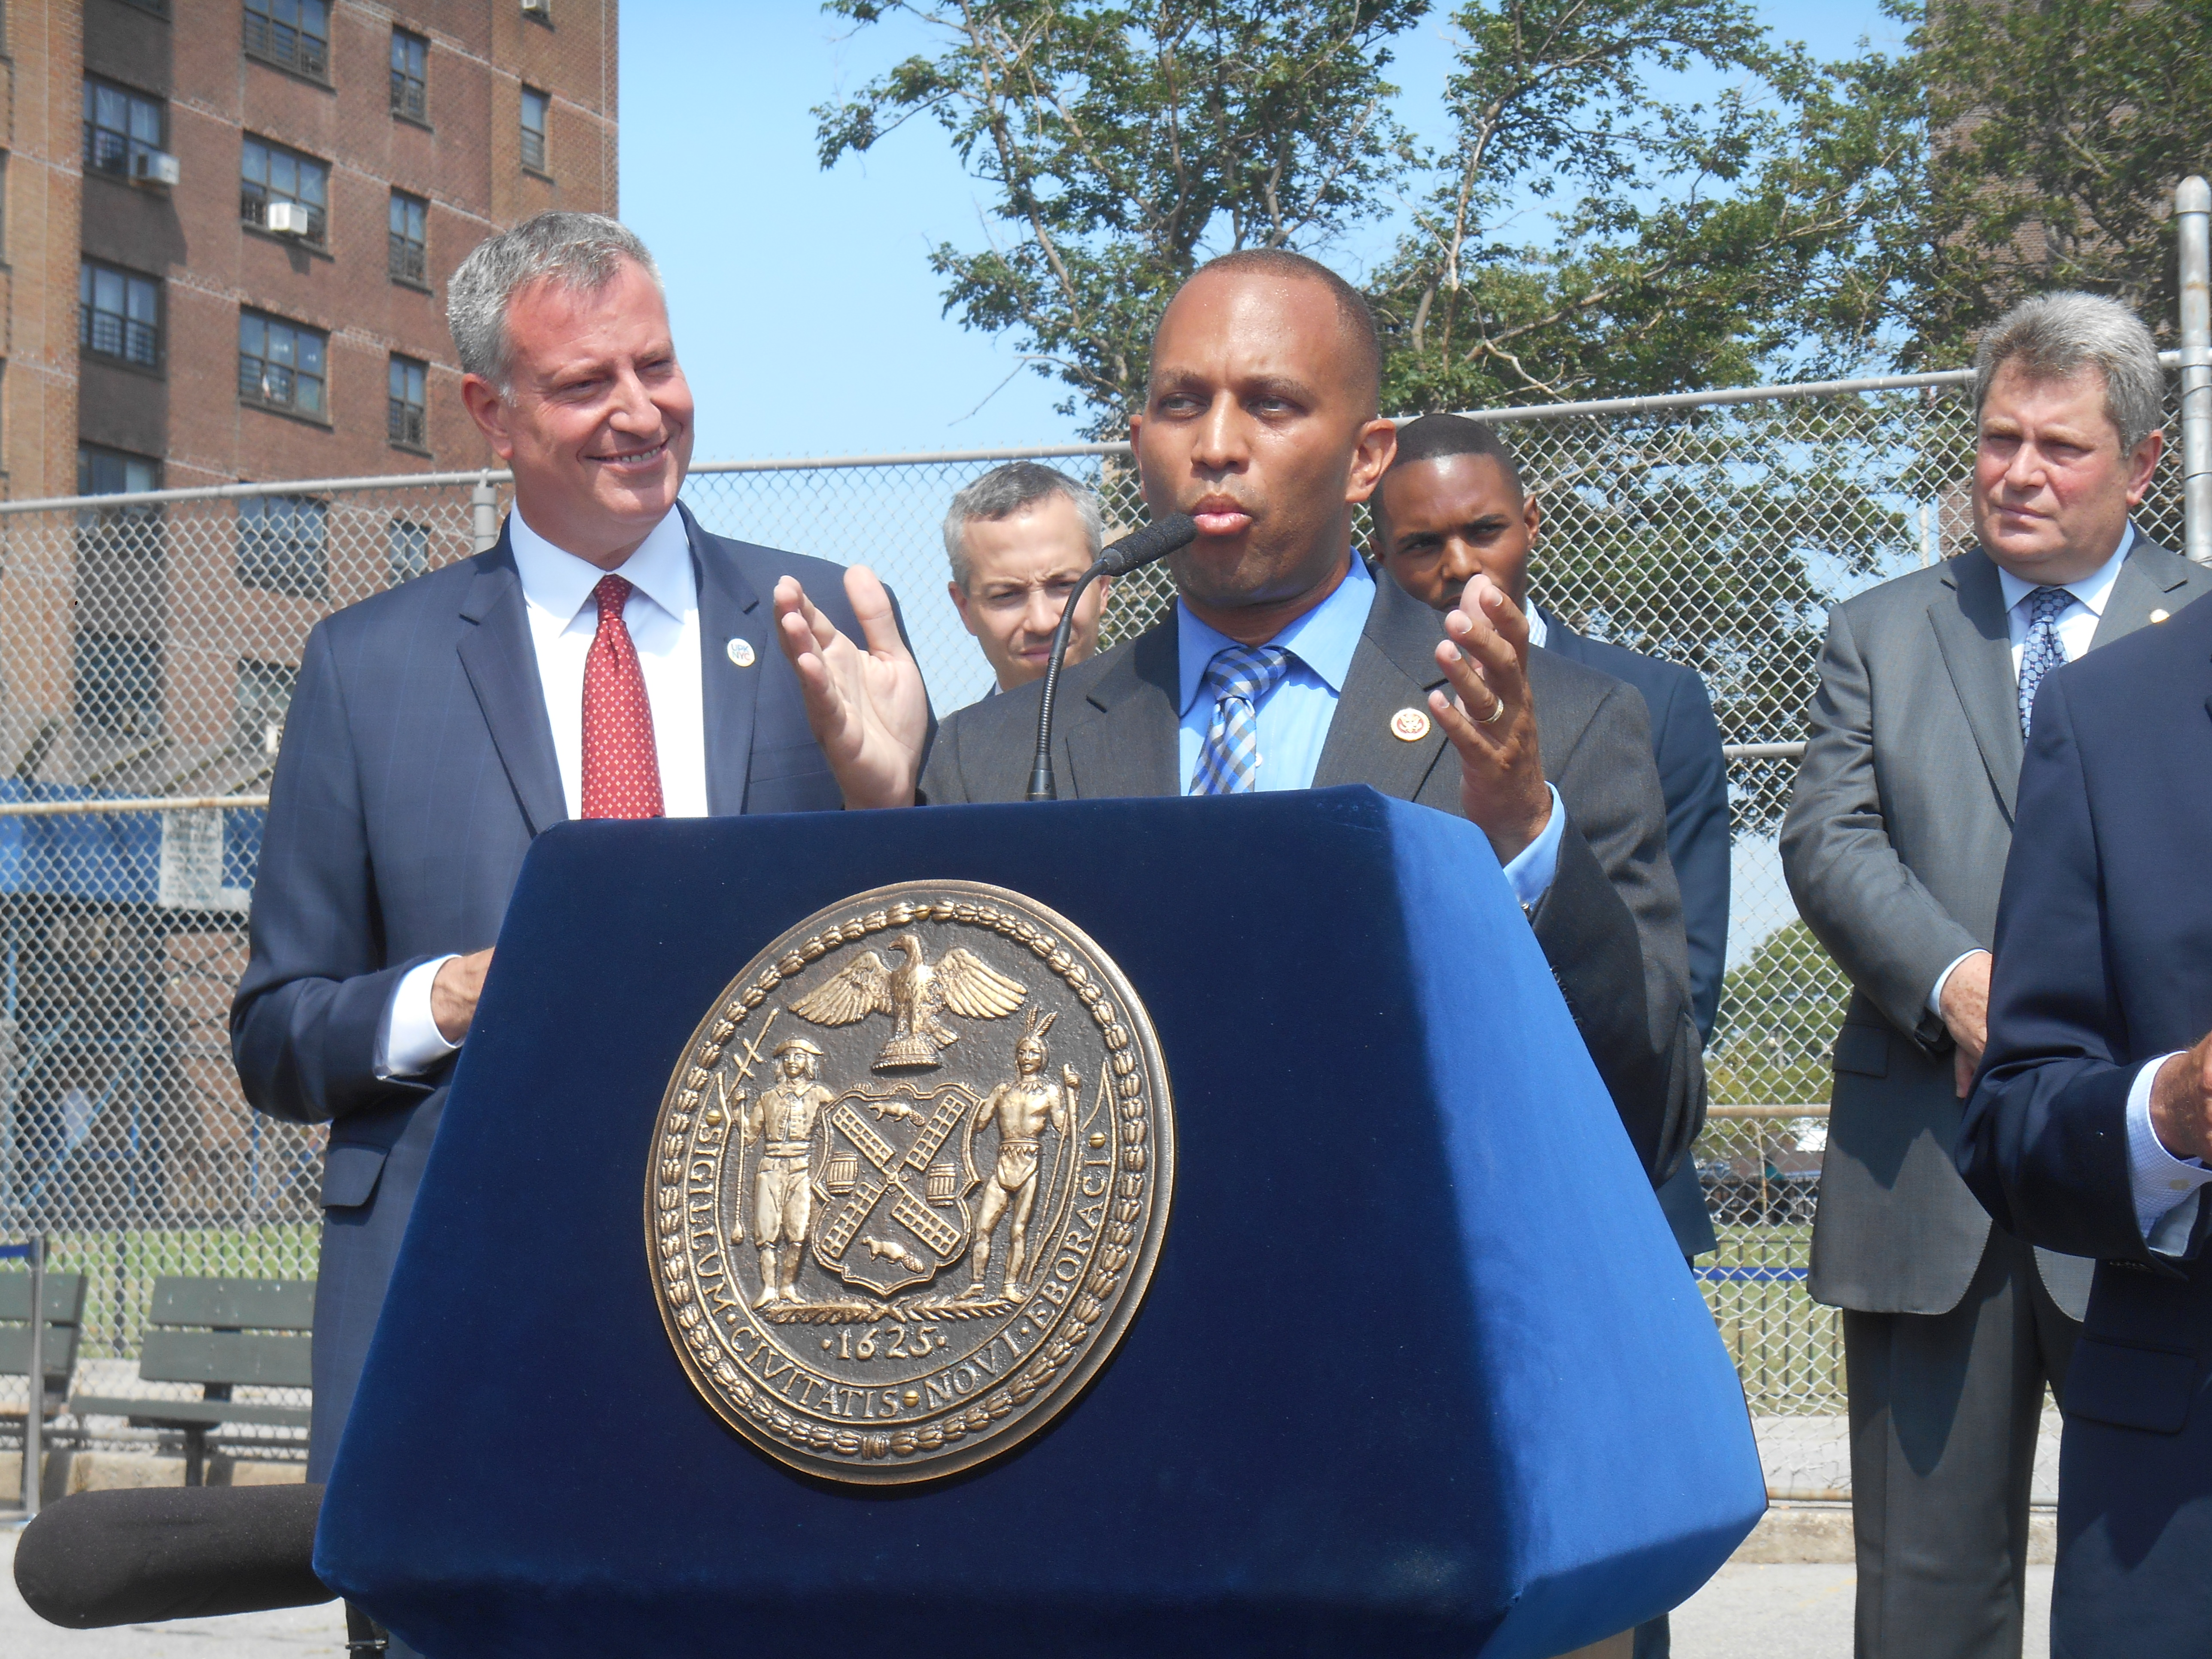 Congressman Hakeem Jeffries. (Photo: Ross Barkan/New York Observer)